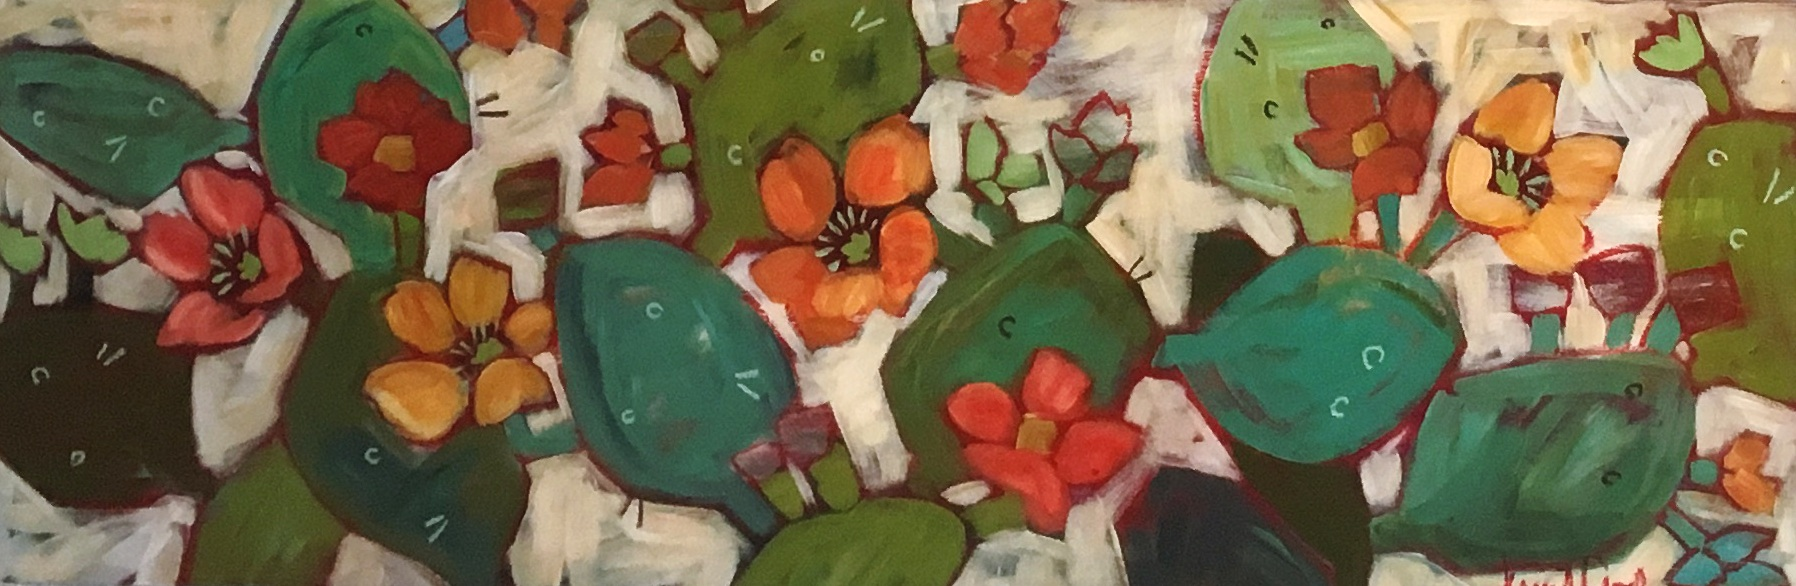 Colorful Prickly Pear